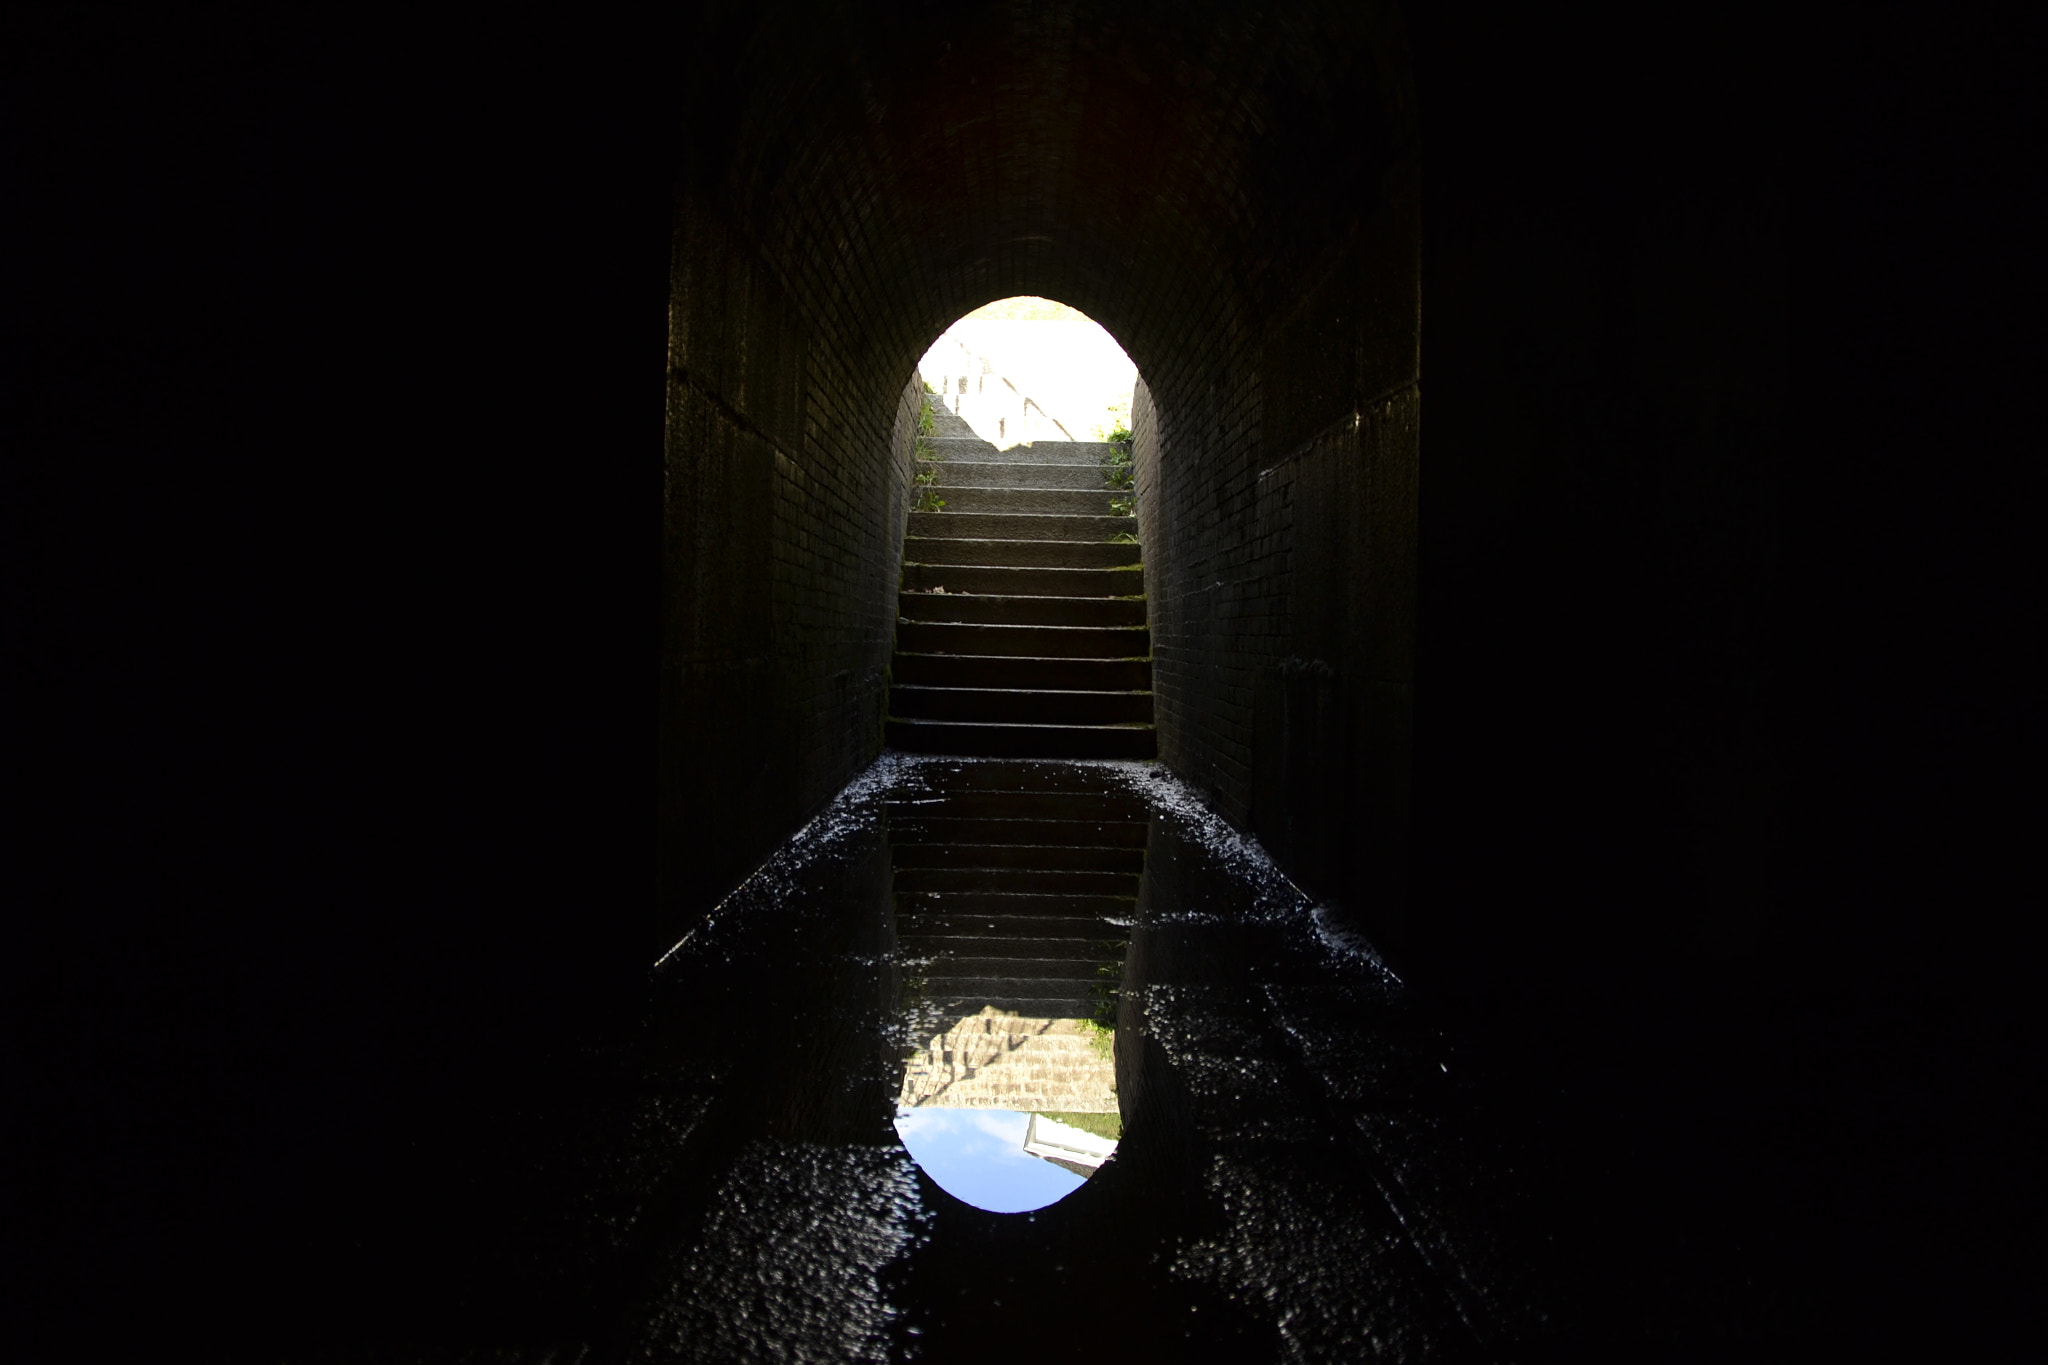 Photograph Stair Opening Reflection by Daniel Joseph on 500px